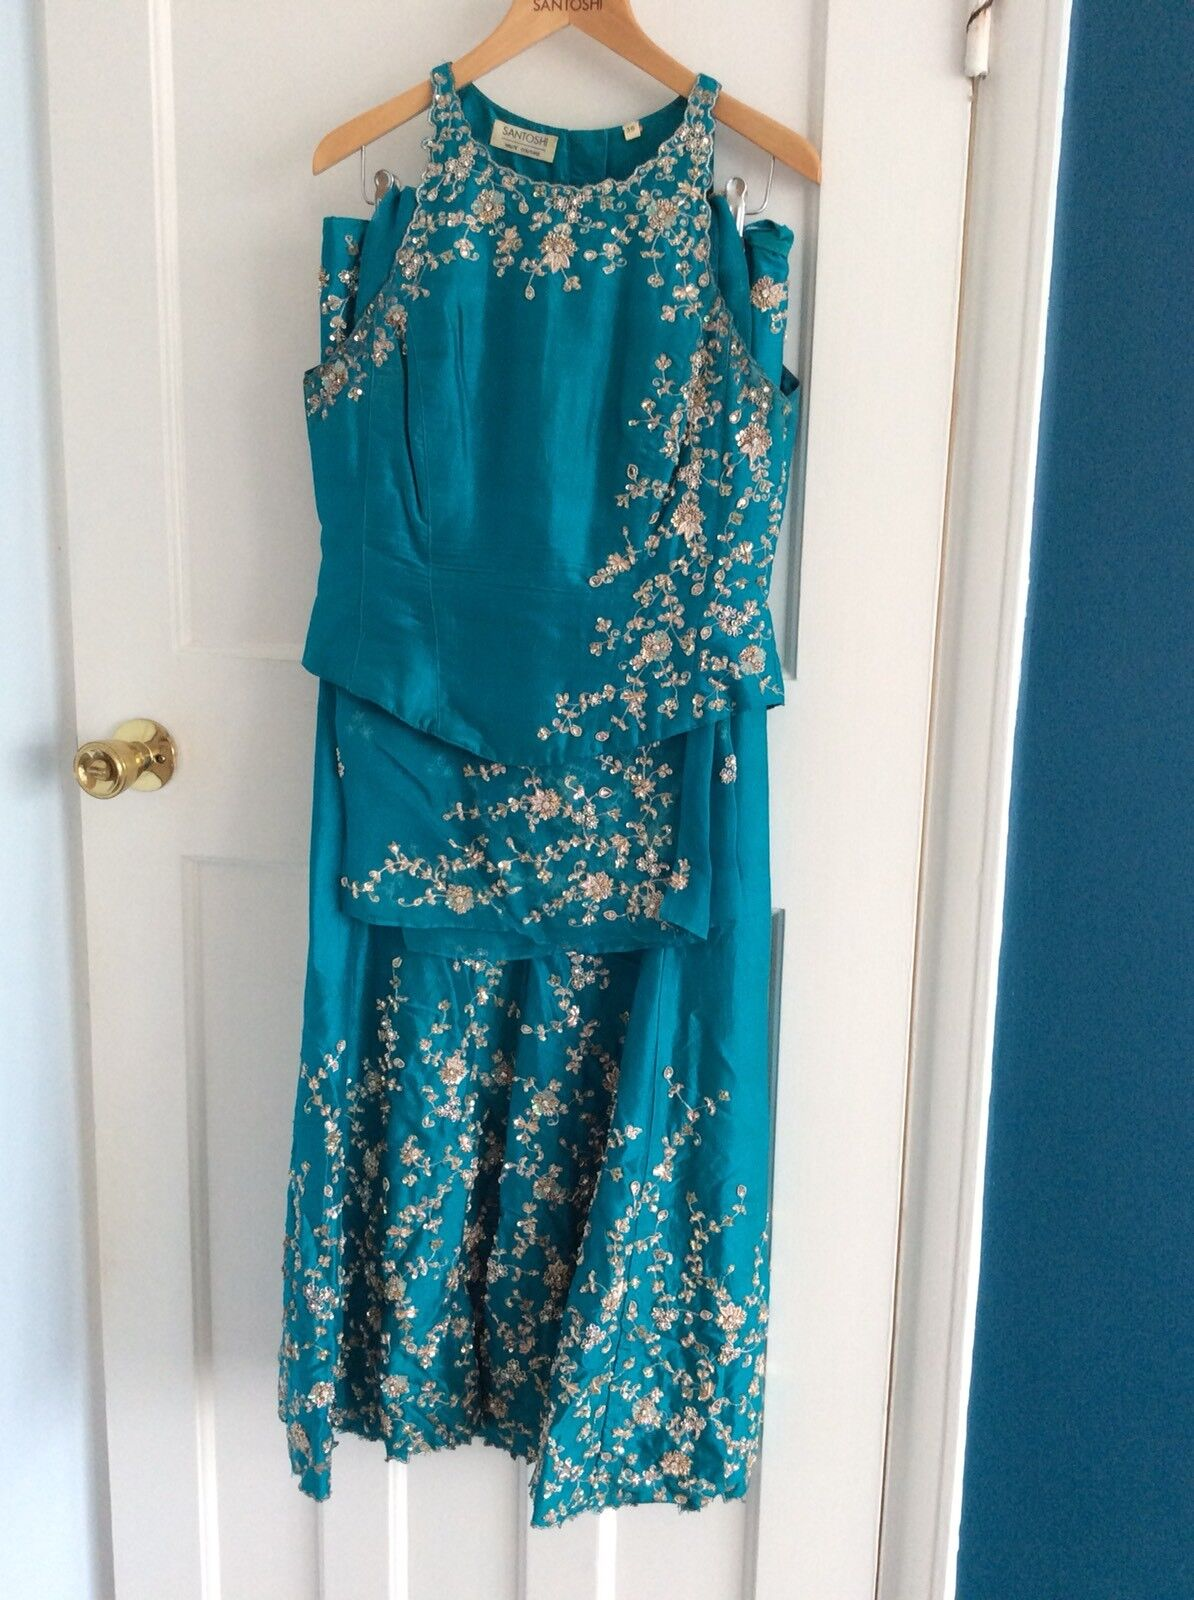 Traditional Indian outfit- size small  36 -RRP  - SANTOSHI - teal - designer